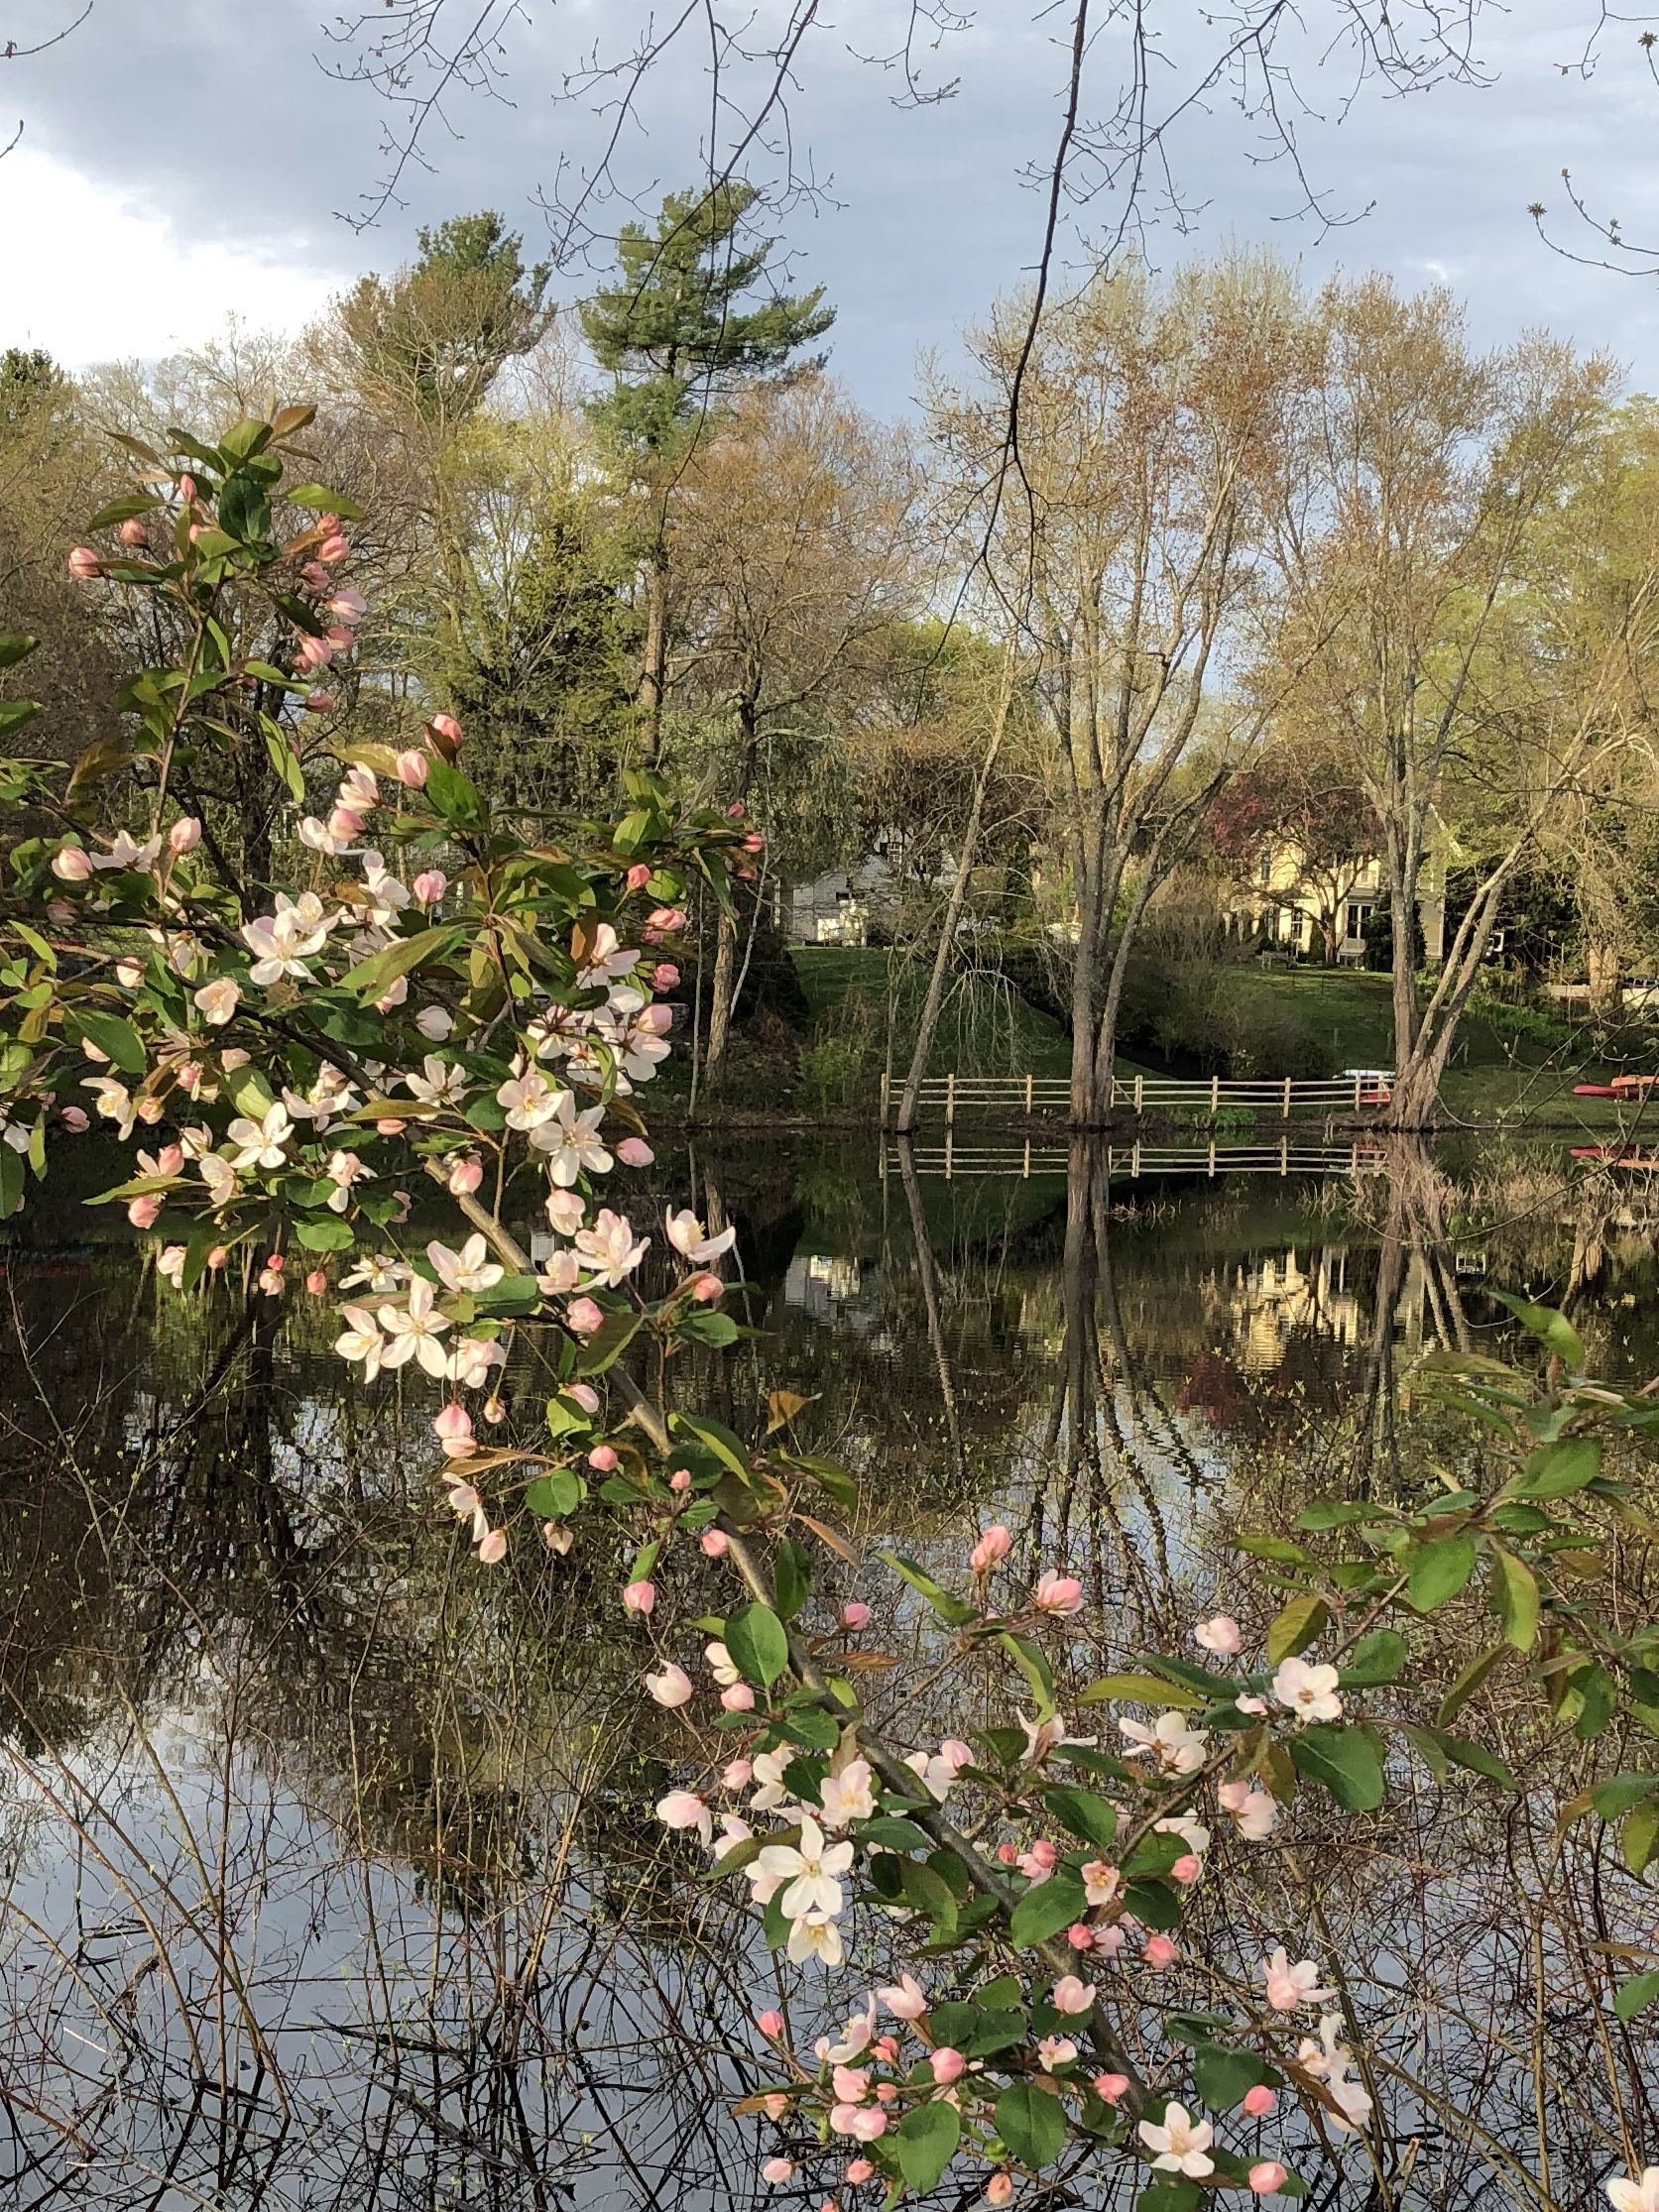 050420-apple-blossoms-by-Sudbury-River